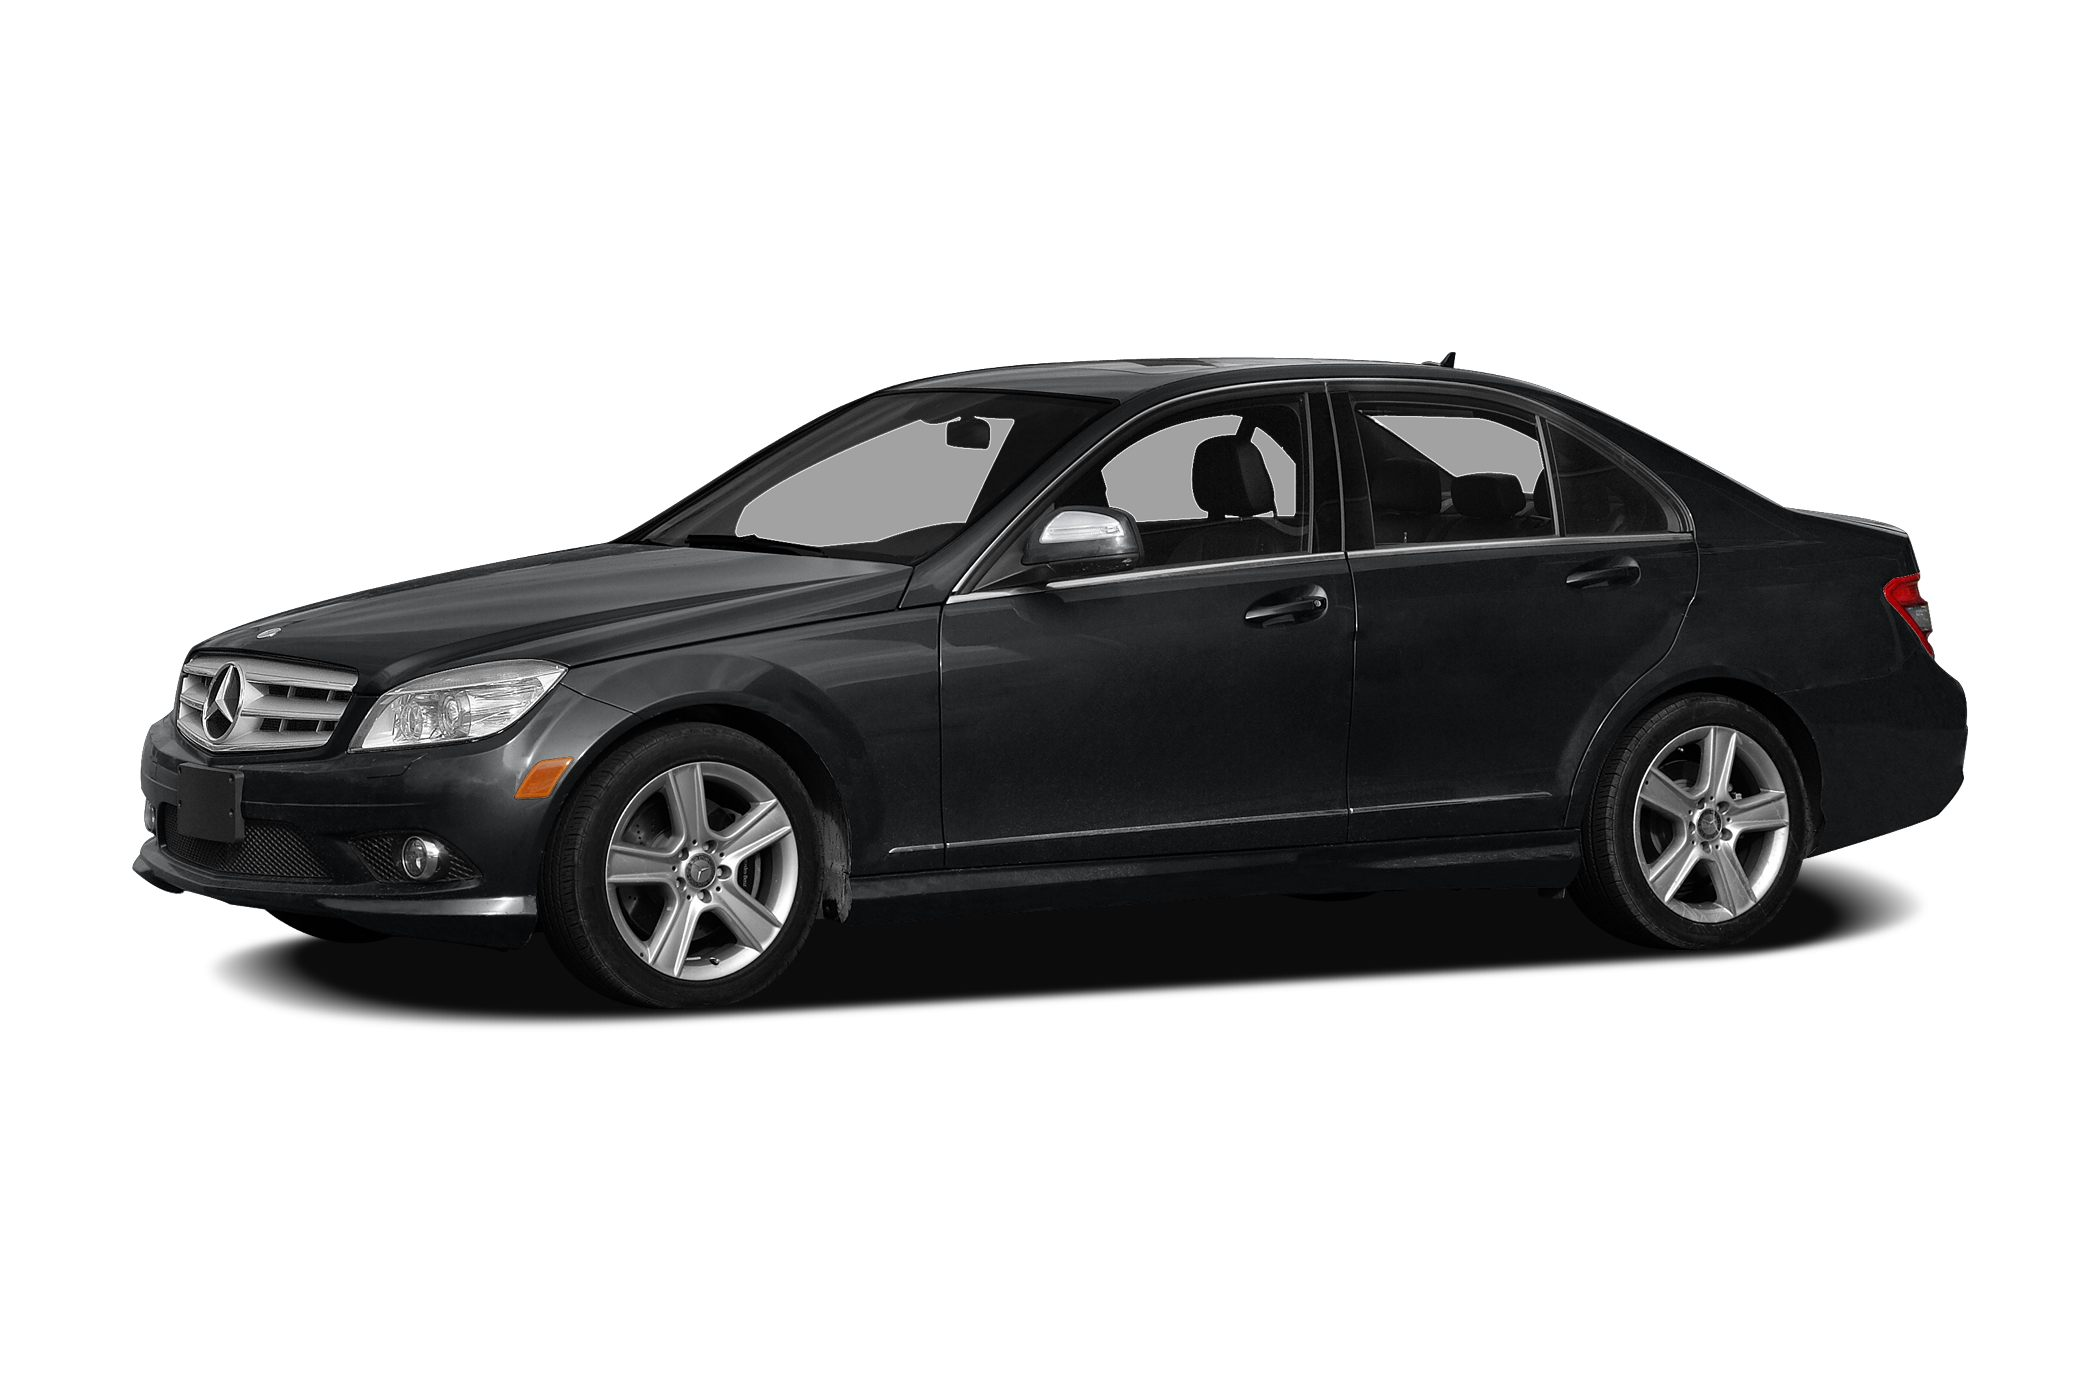 2008 Mercedes-Benz C-Class C300 Luxury Sedan for sale in Fort Worth for $13,995 with 100,373 miles